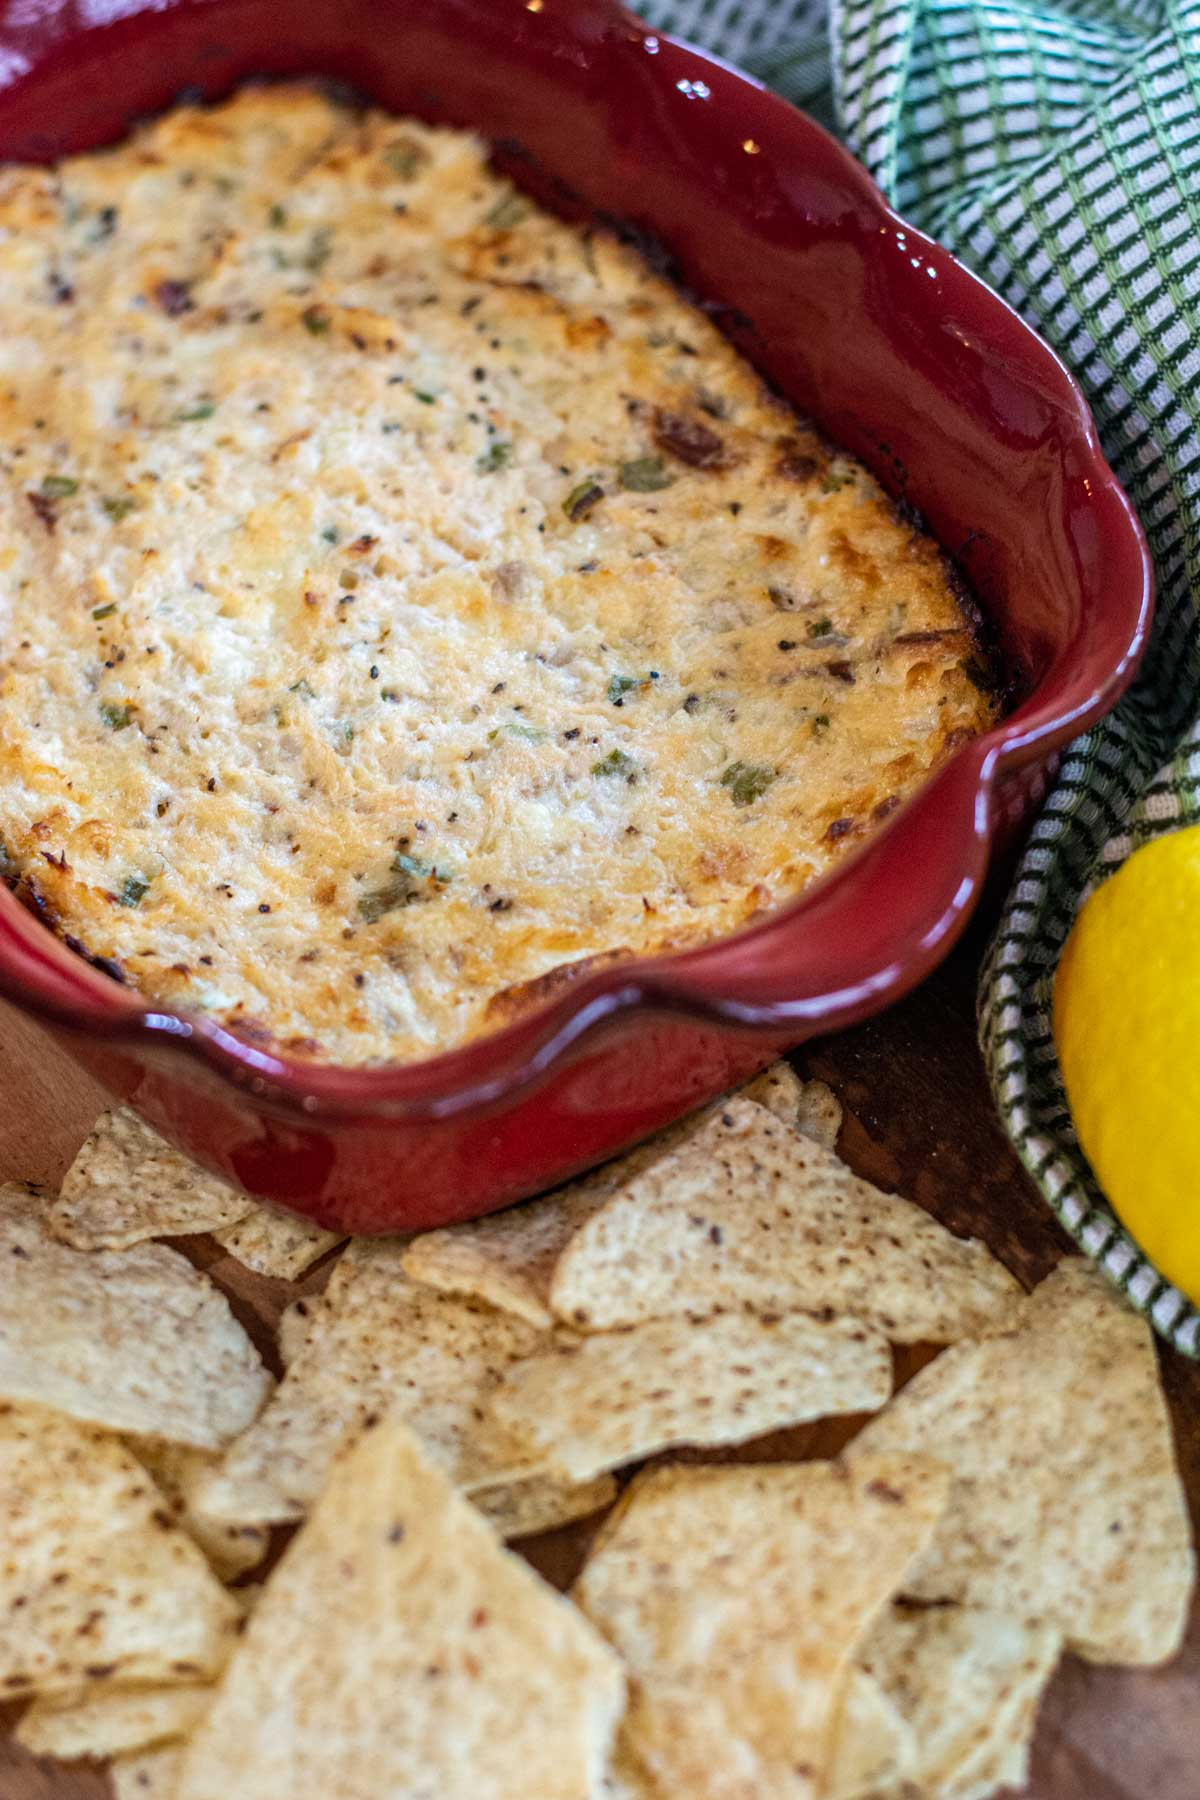 decorative dish with the smoked salmon dip and the counter has corn chips.